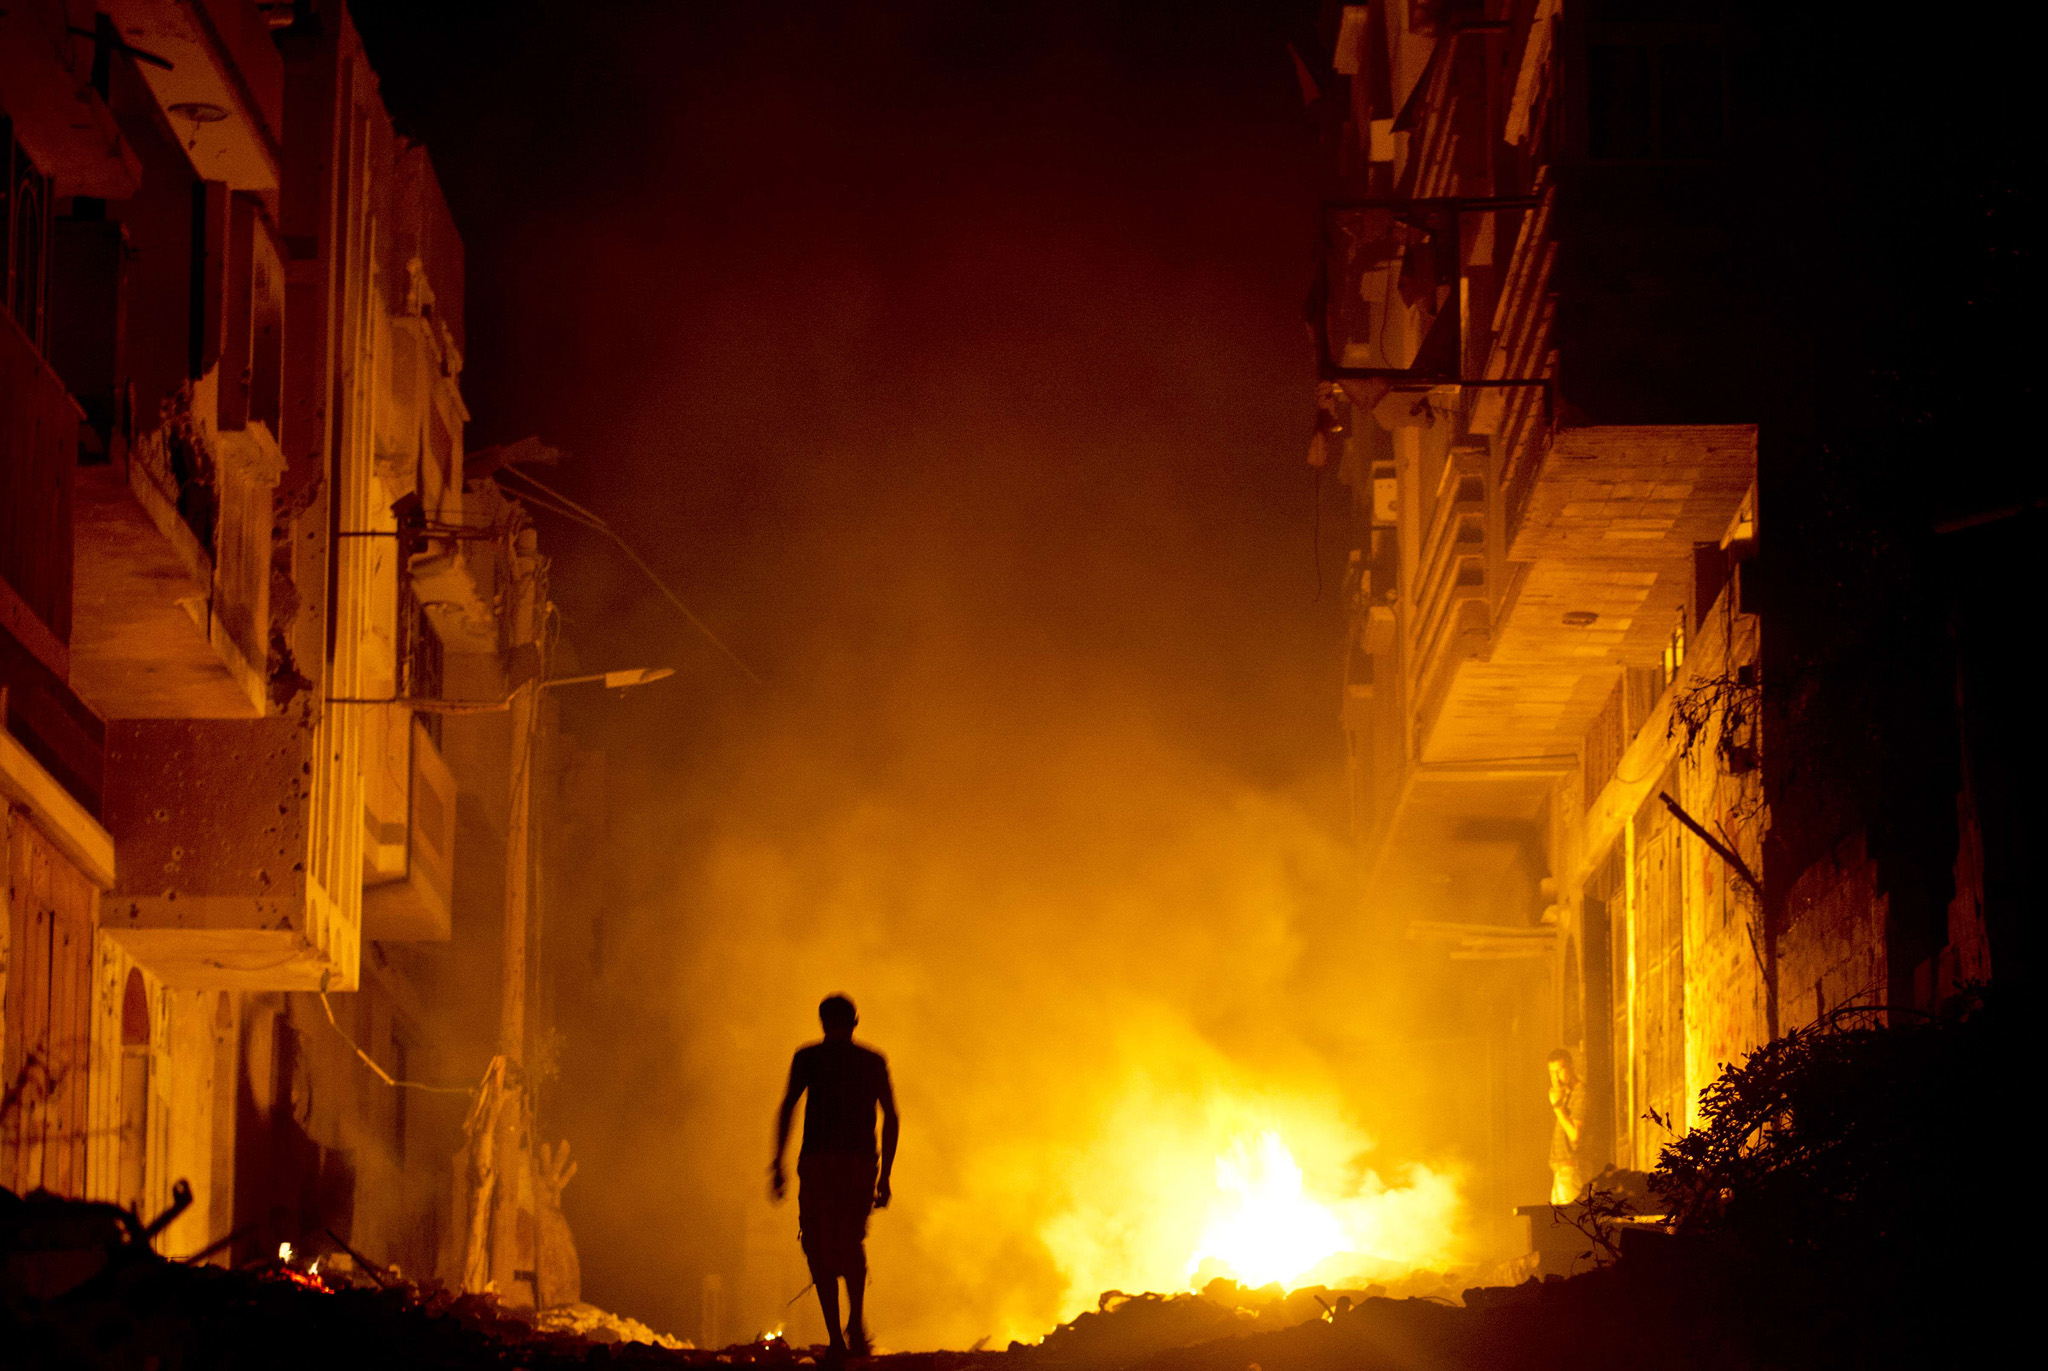 A Palestinian man walks past a fire in a street set by a home owner in an effort to keep mosquitoes away from their shattered homes in Shejaiya on August 27, 2014. Shejaiya was one of the hardest hit neighborhoods in fighting between Hamas militants and Israel during 50 days of fighting. Israel and Palestinians both boasted of victory in the Gaza war but analysts say Hamas received only promises while the conflict aggravated divisions in the Israeli leadership.  AFP PHOTO/ROBERTO SCHMIDTROBERTO SCHMIDT/AFP/Getty Images